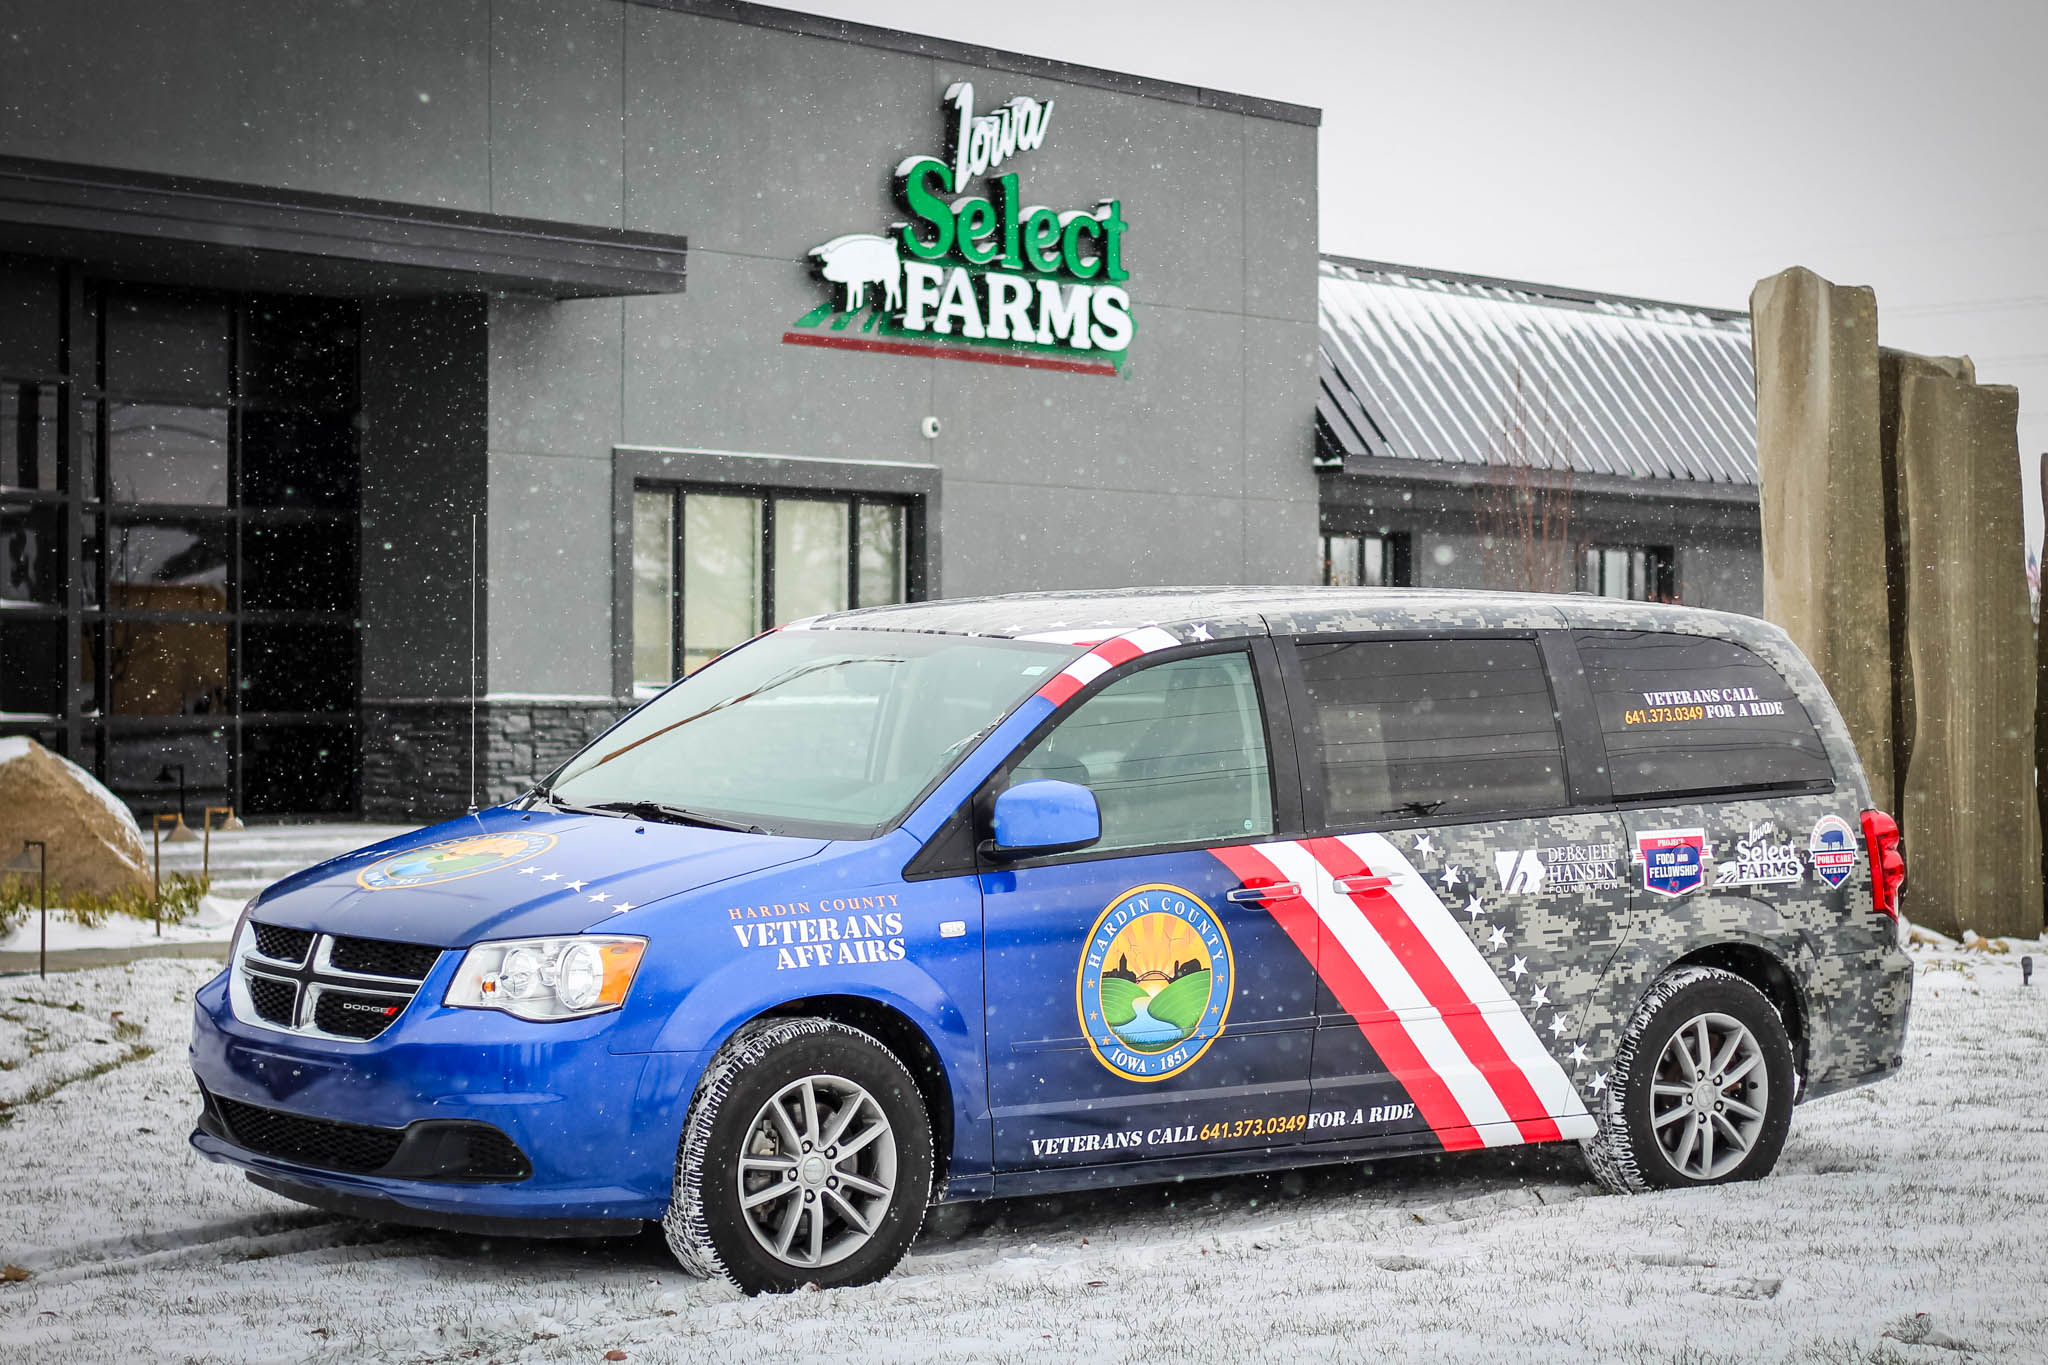 Veterans Affairs Van